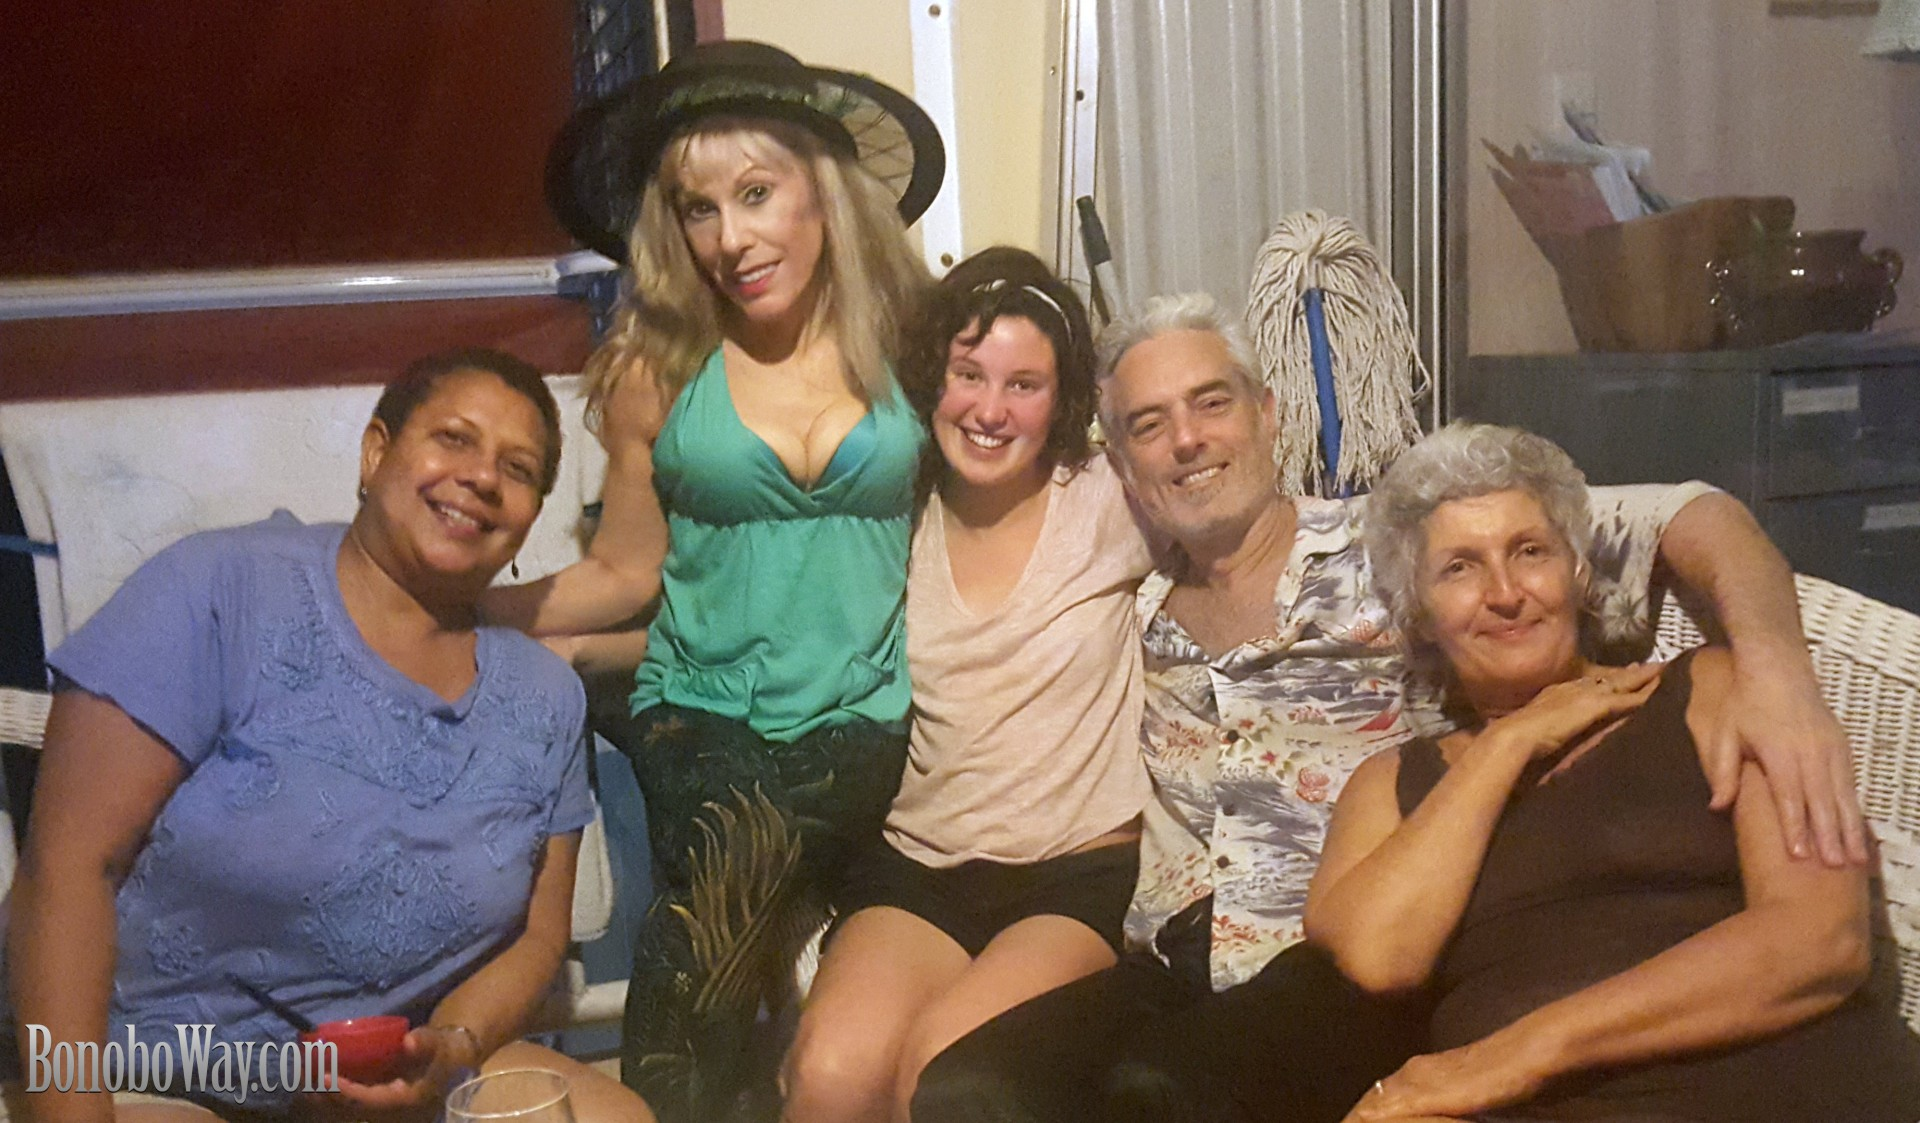 Jet-lagged but happy to be with Maria, Emily, Taber and SerenaGaia in Mayaguez. Photo: Max